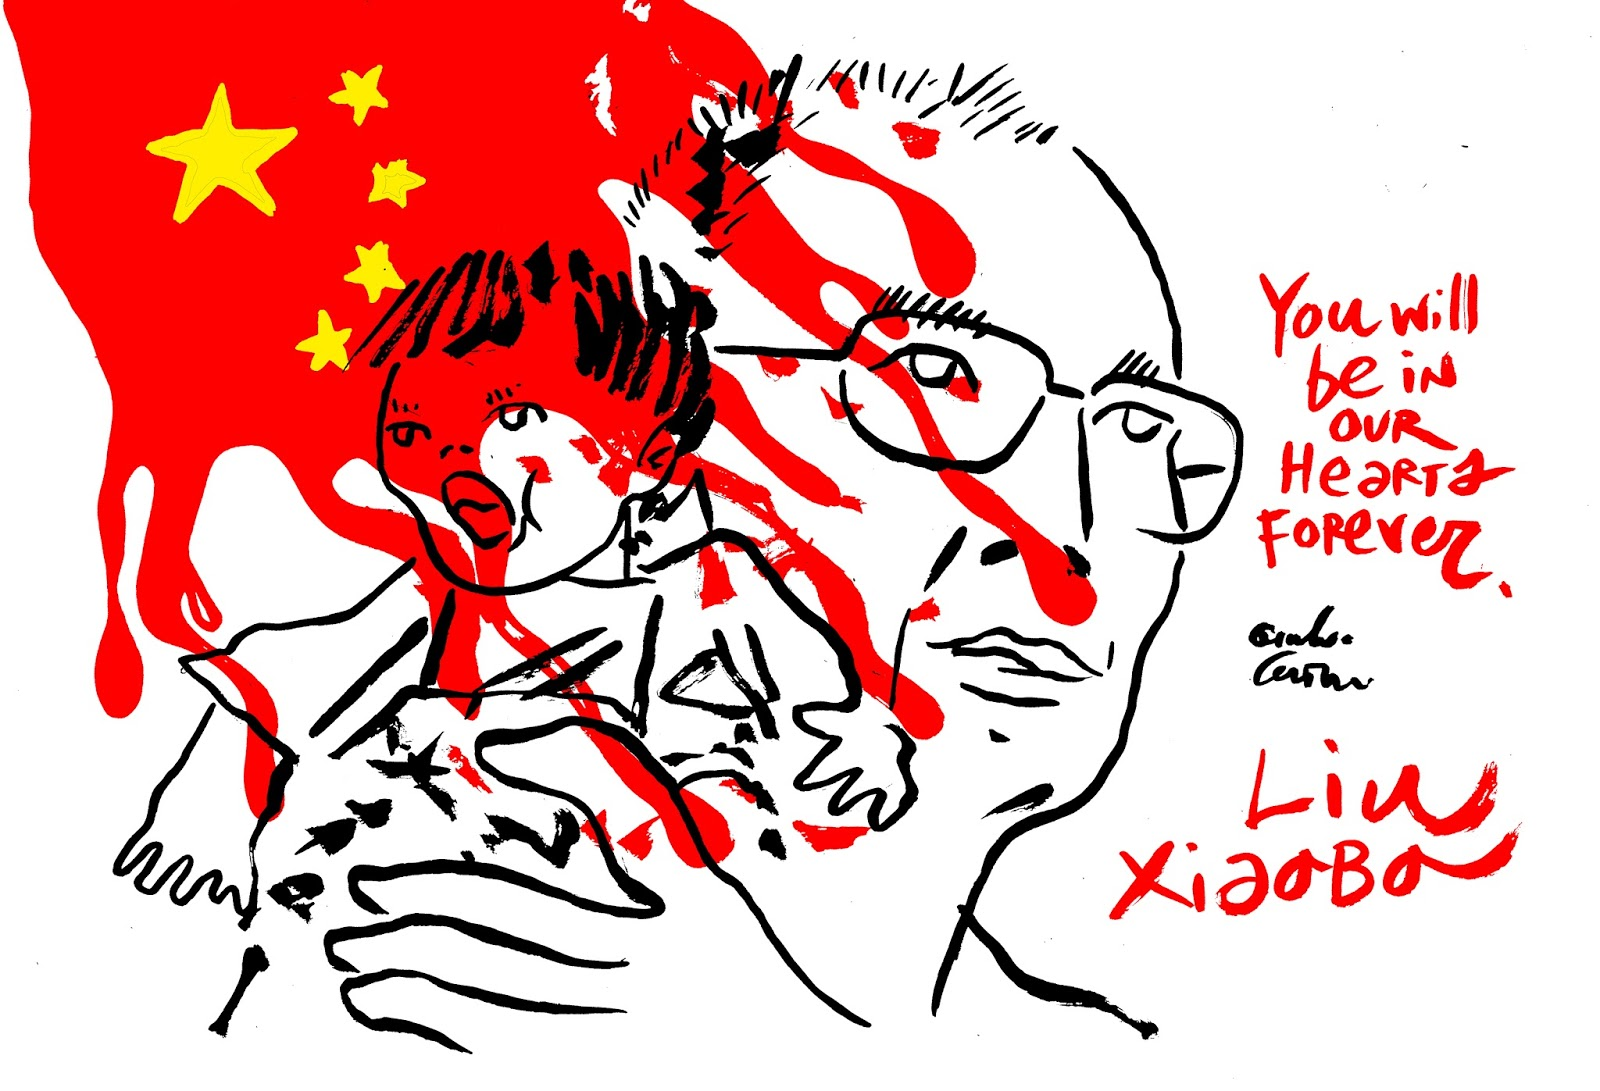 Forever in our hearts clipart vector royalty free library Channeldraw: Liu Xiaobo - You be in our hearts forever! vector royalty free library